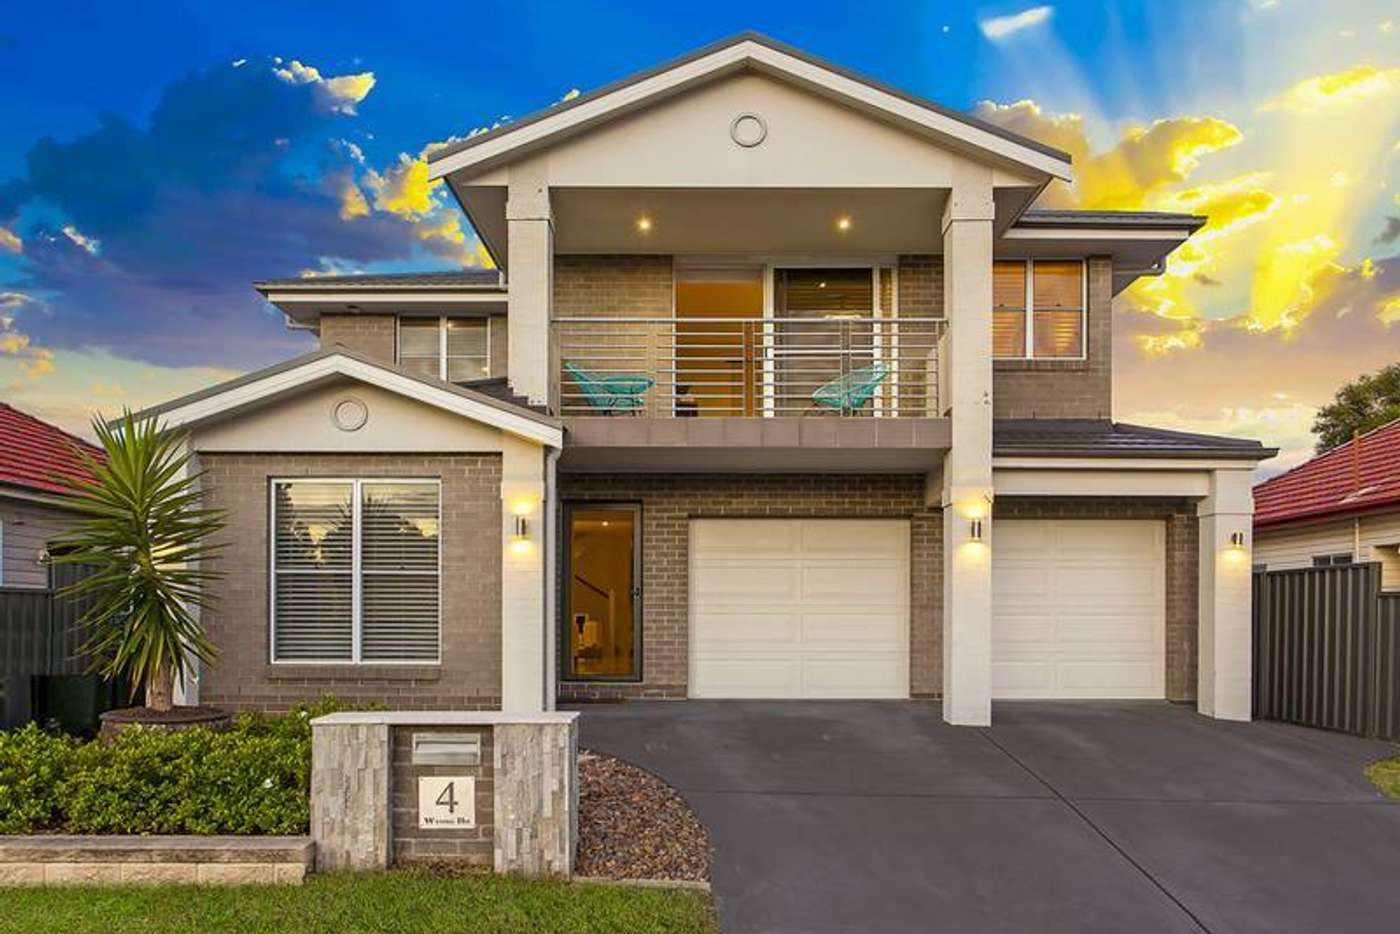 Main view of Homely house listing, 4 Wyong Road, Lambton NSW 2299